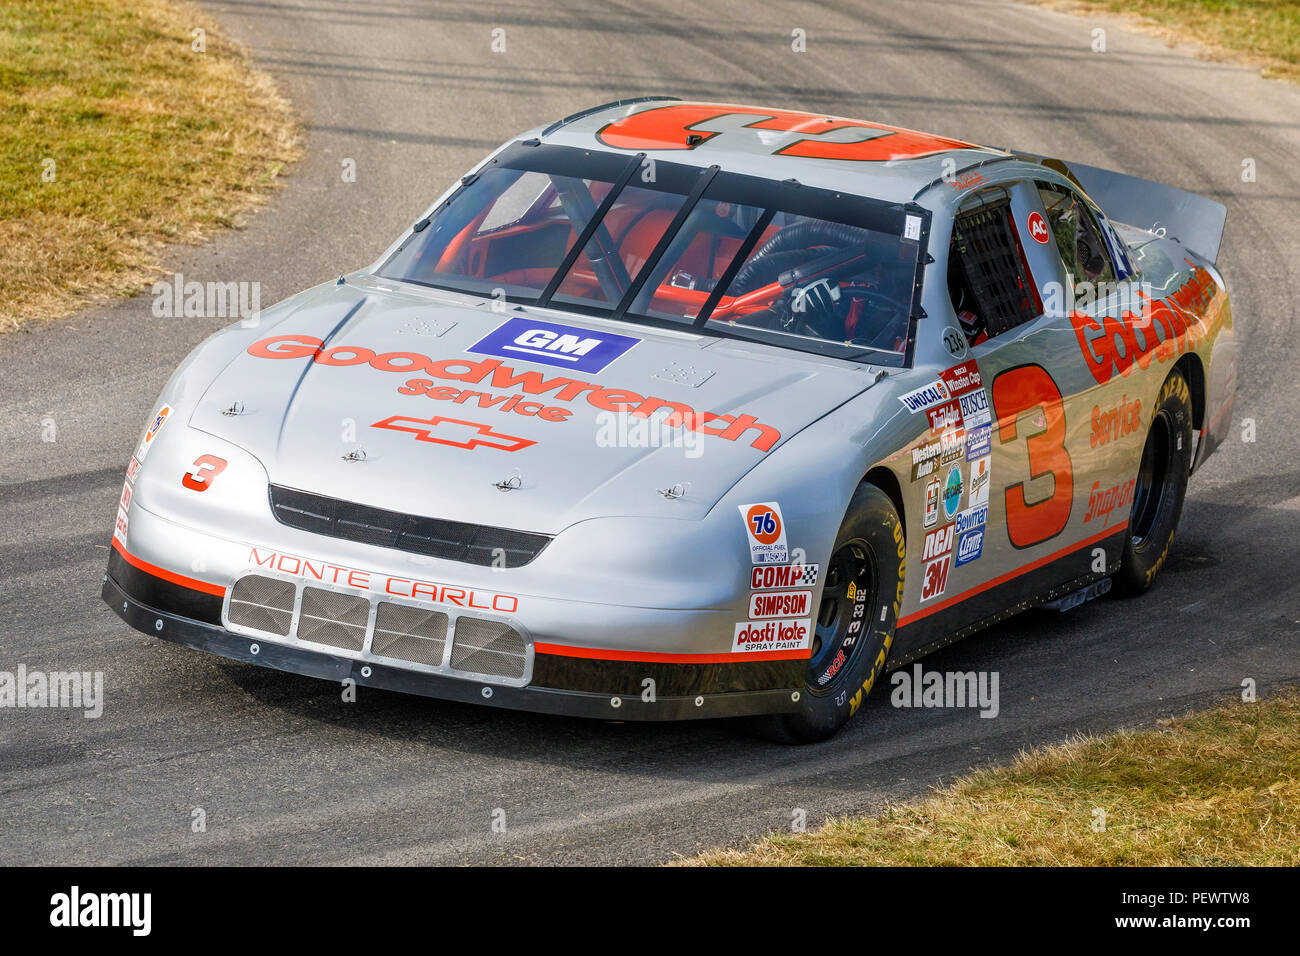 1995 goodwrench chevrolet monte carlo nascar entrant with driver danny lawrence at the 2018 goodwood festival of speed sussex uk stock photo alamy https www alamy com 1995 goodwrench chevrolet monte carlo nascar entrant with driver danny lawrence at the 2018 goodwood festival of speed sussex uk image215697924 html